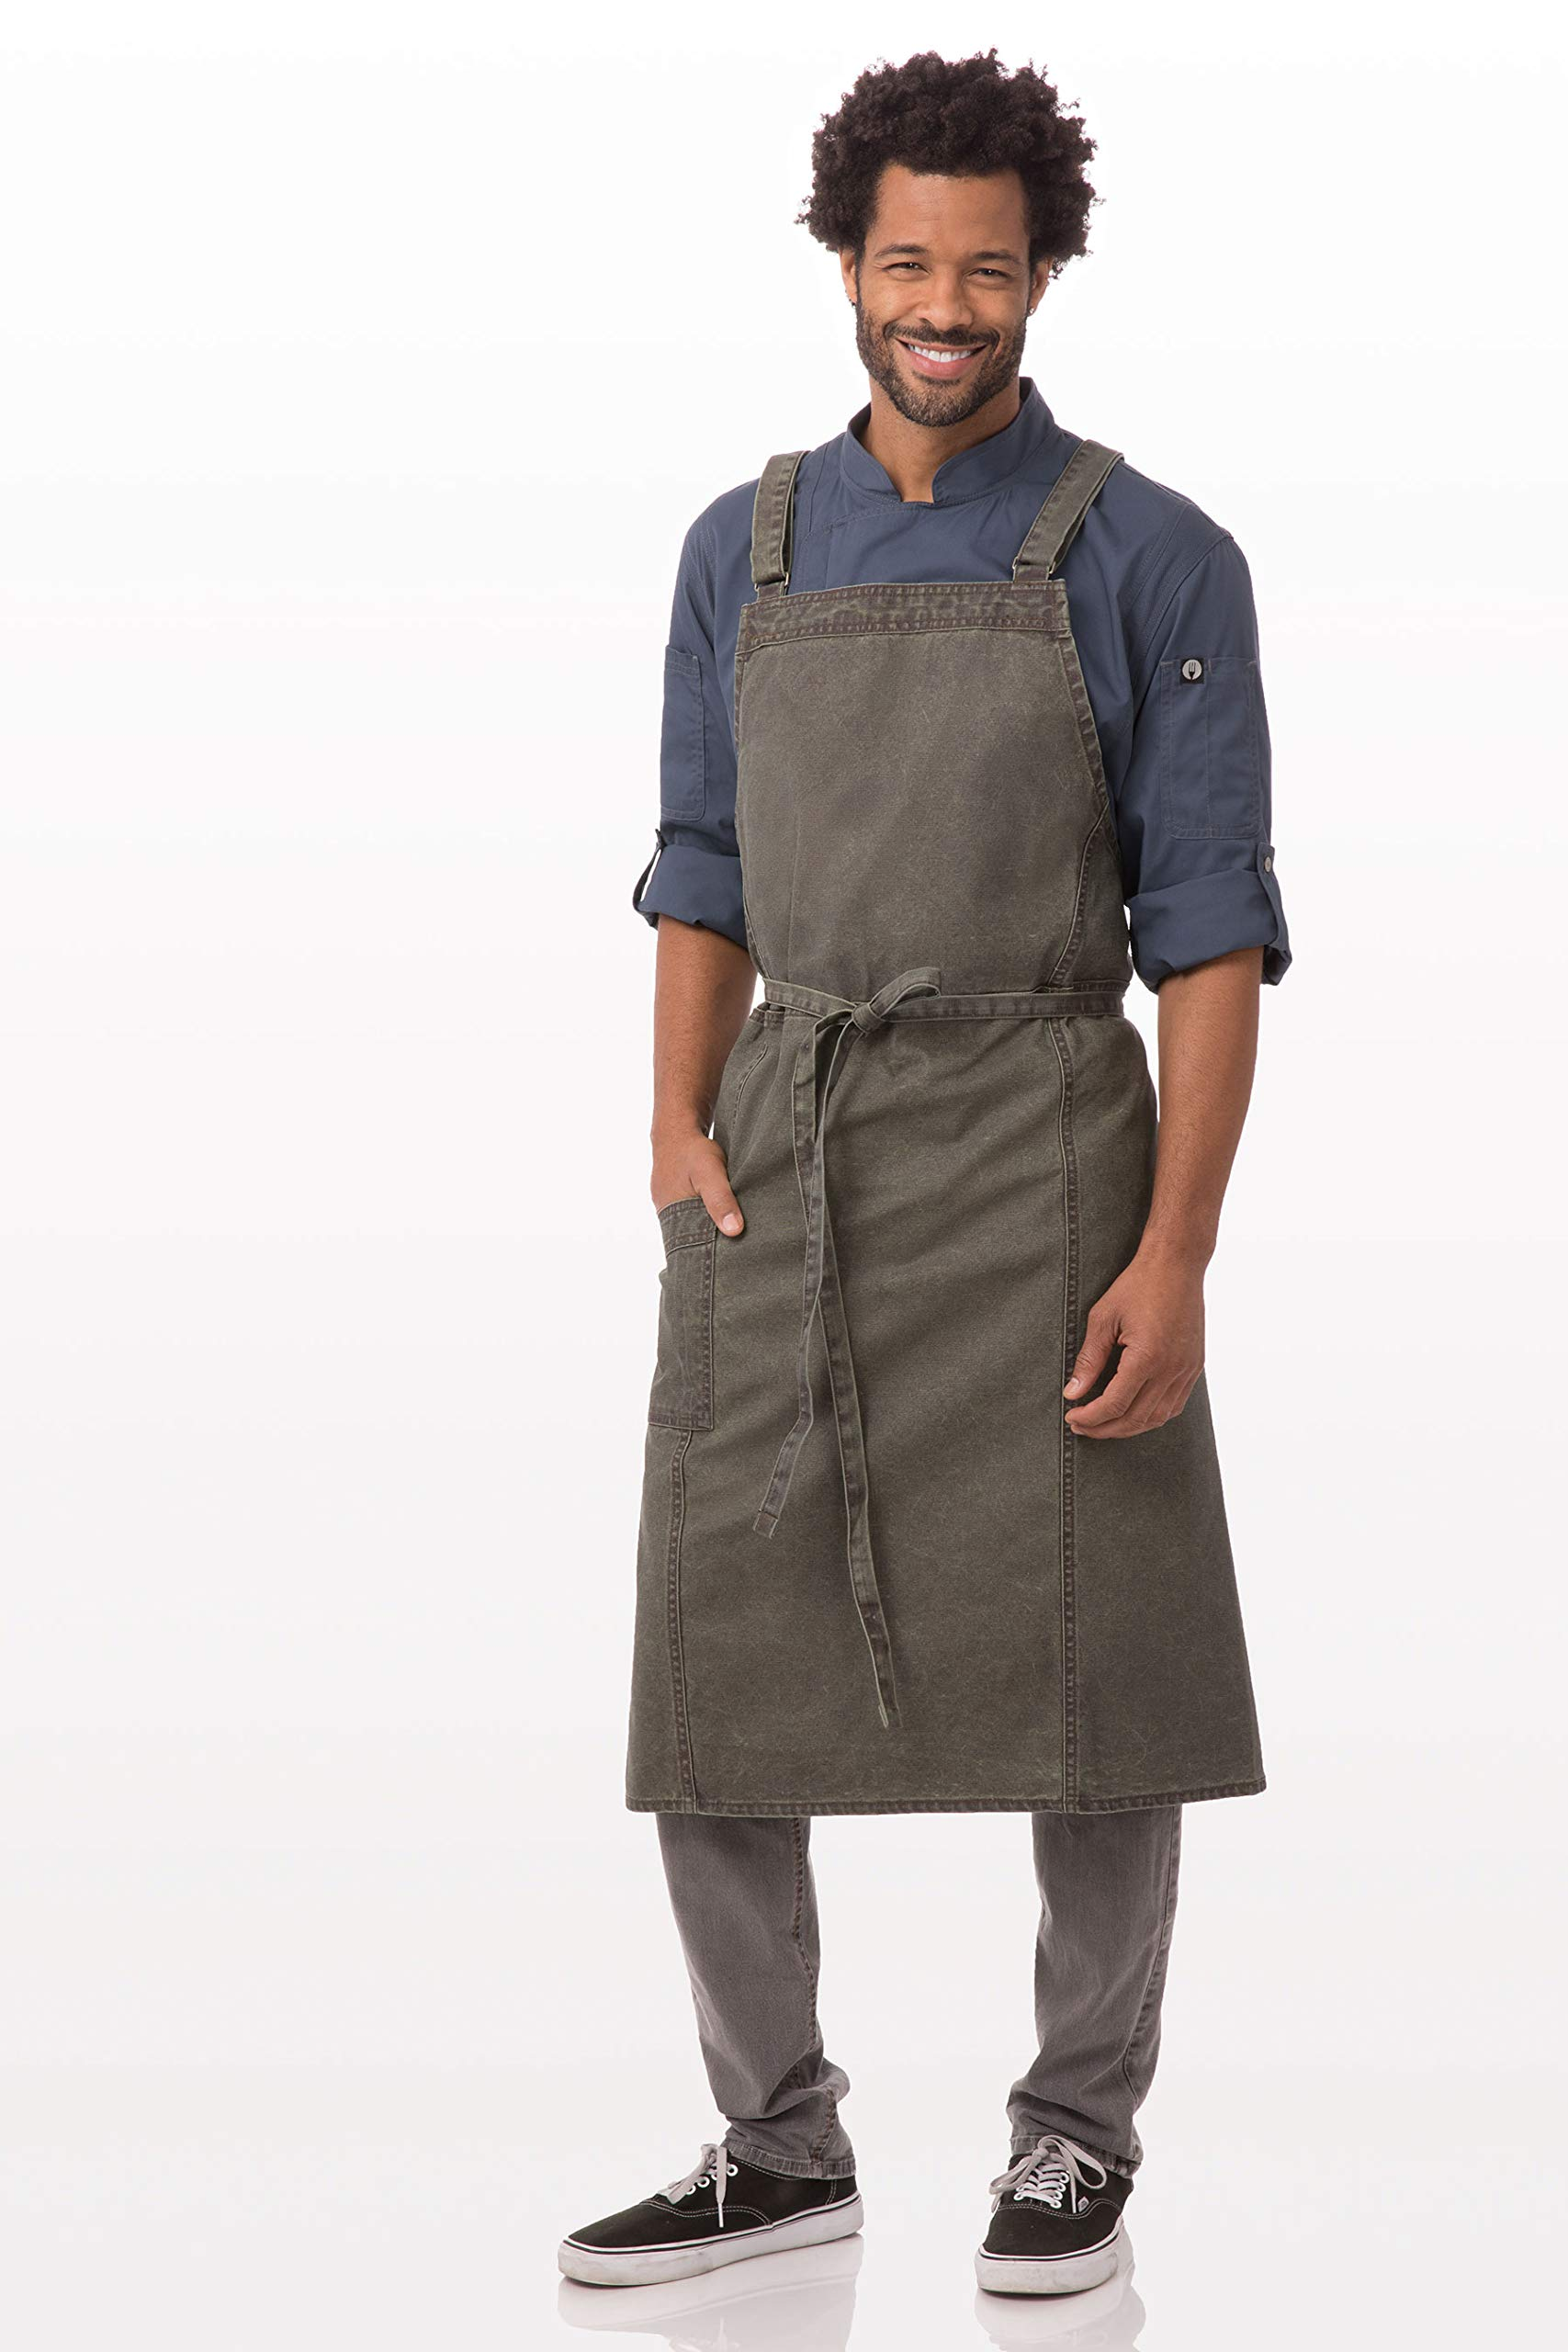 Chef Works Denver Chefs Cross-Back Bib Apron, Olive Wood, One Size by Chef Works